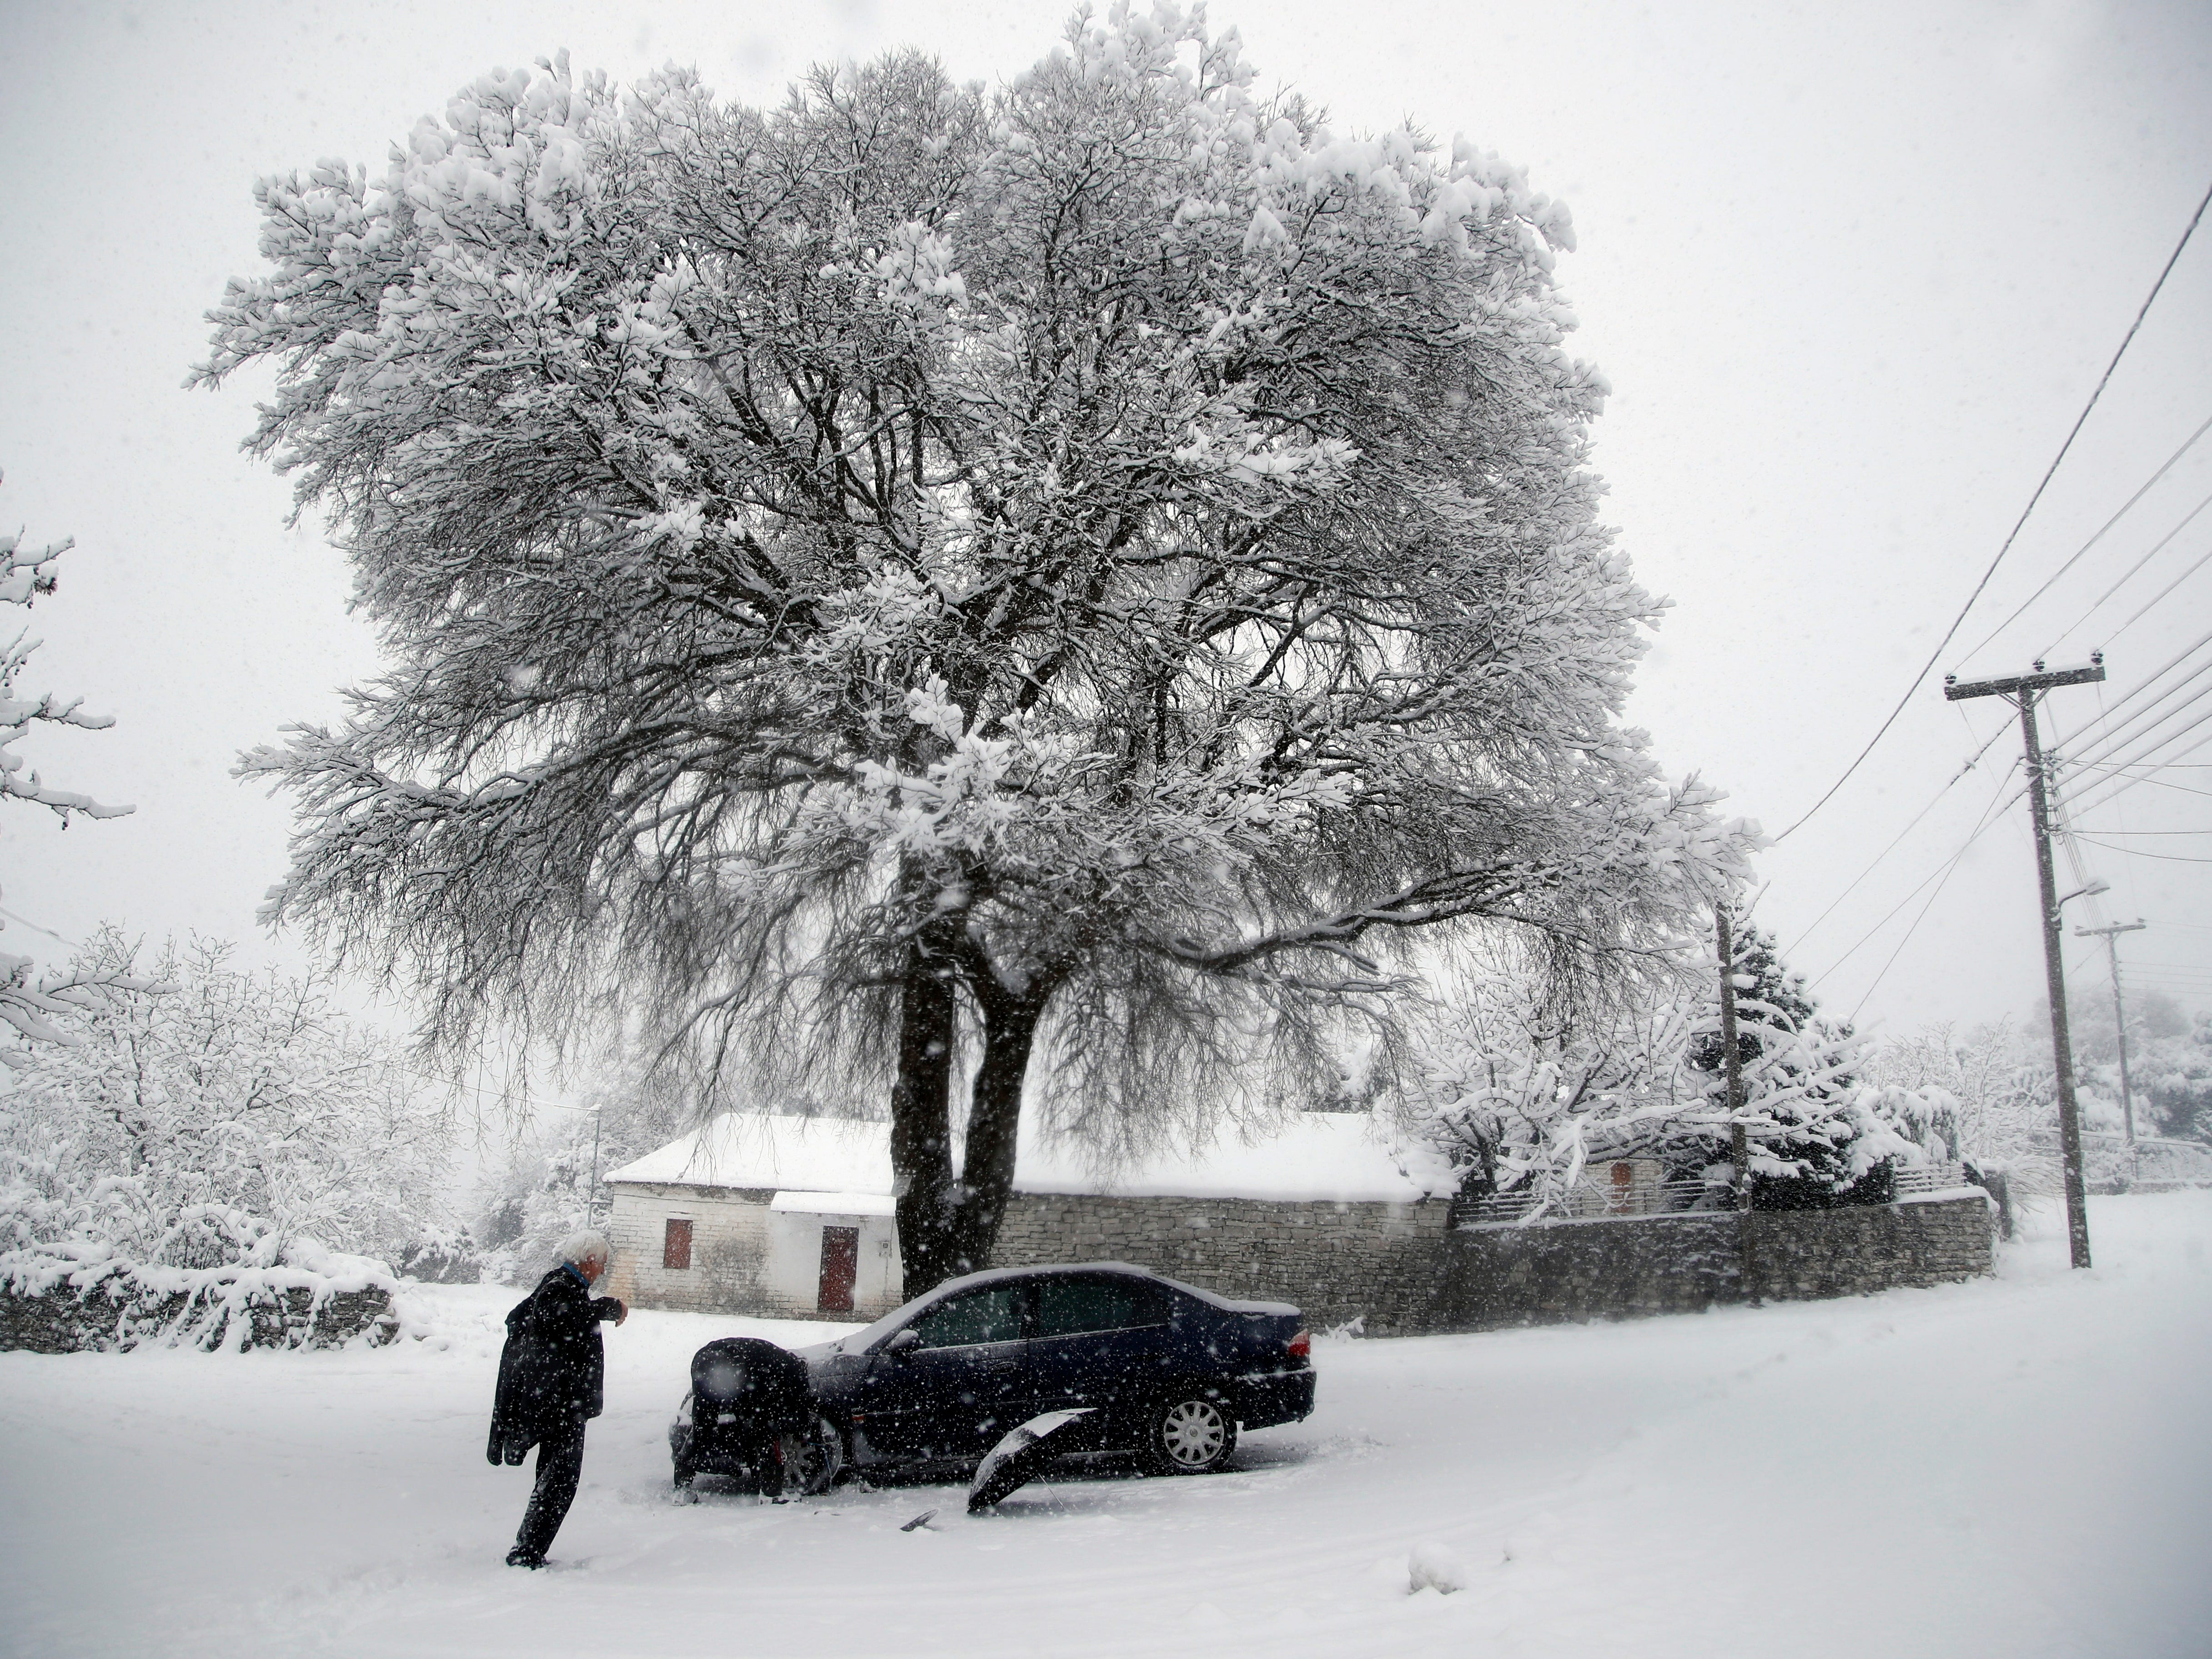 Two local residents try to put anti-skid chains on a car during a snowfall in Myrodafni village, near Ioannina city, northwestern Greece,  Jan. 4, 2019.